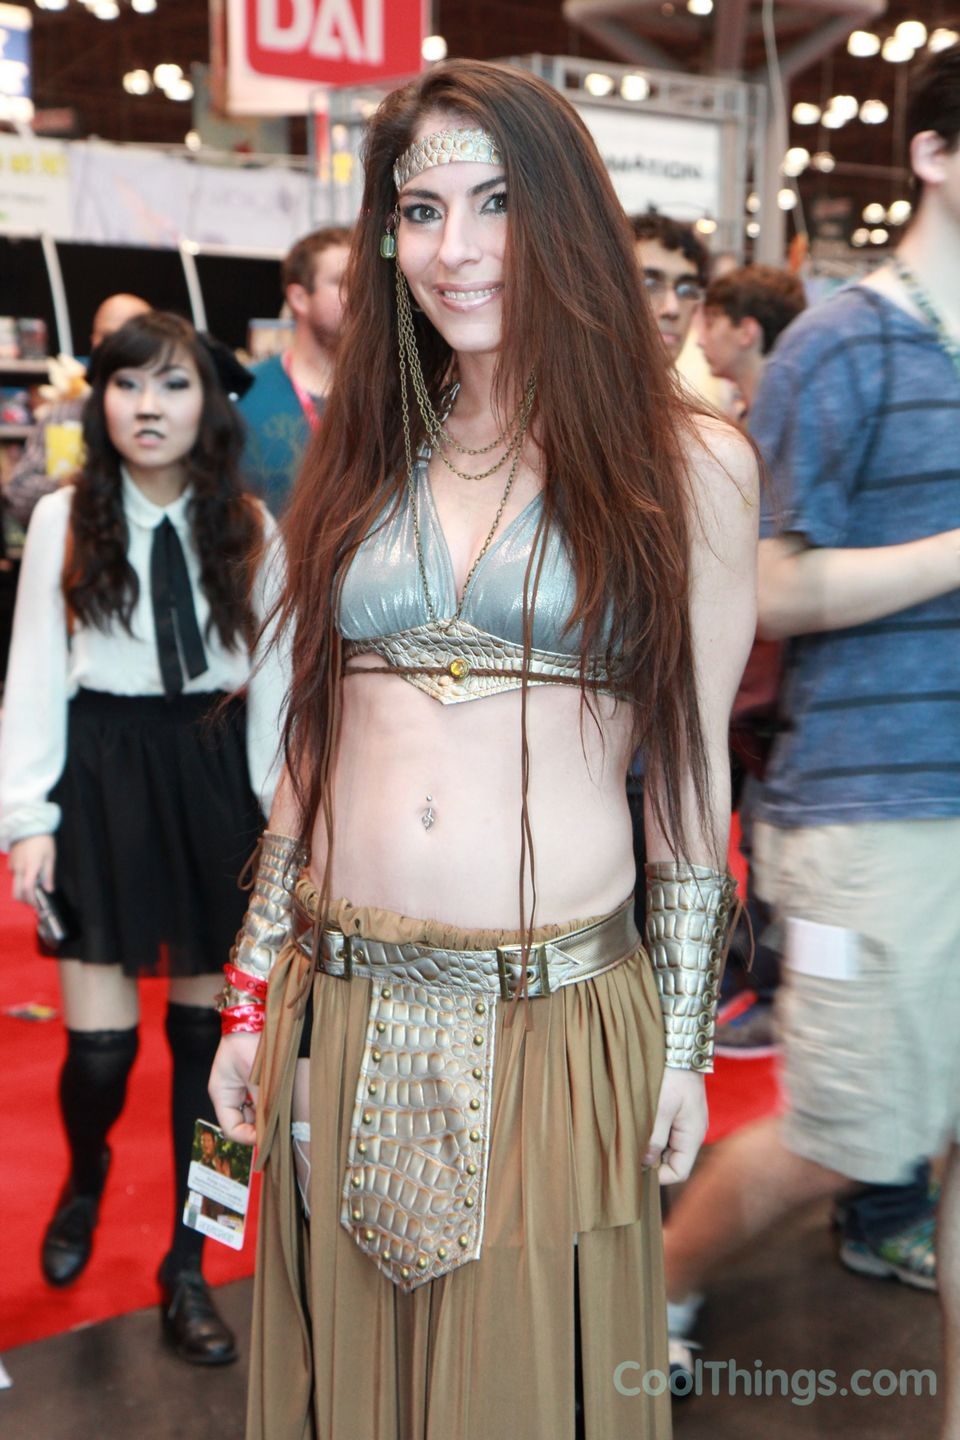 nycc-cosplay-62